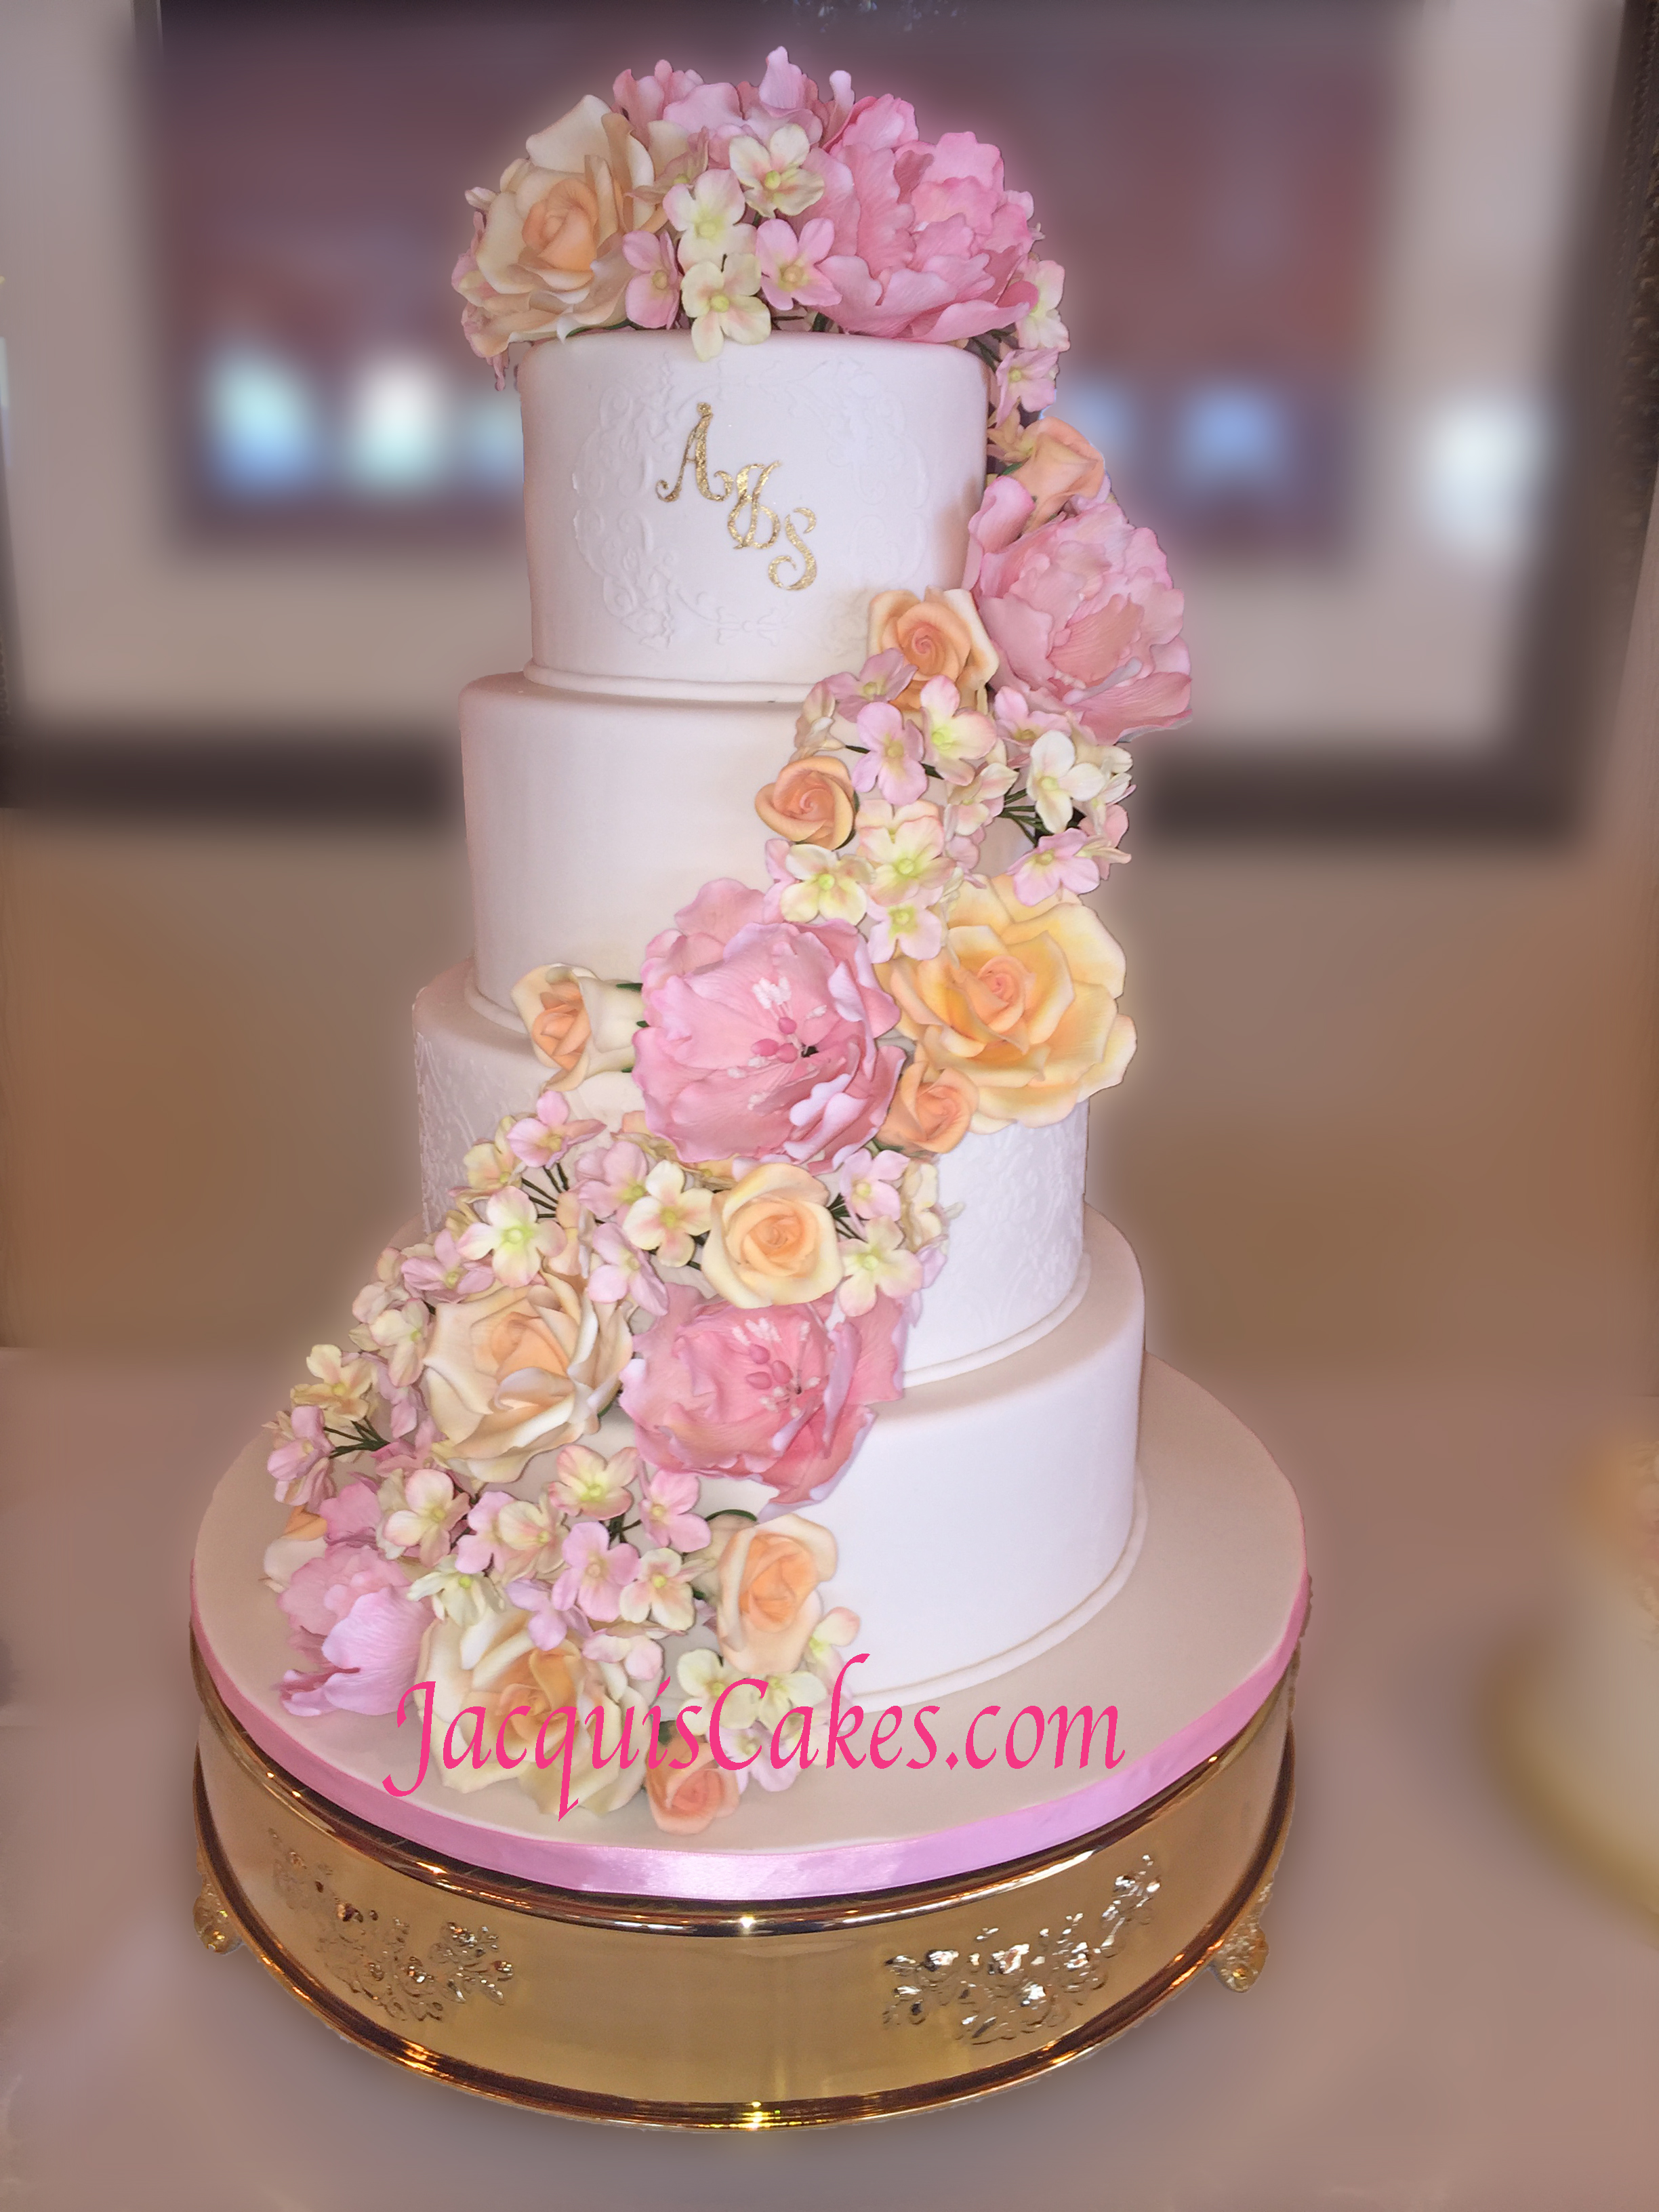 wedding cakes seattle tacoma jacqui 39 s cakes celebration cakes. Black Bedroom Furniture Sets. Home Design Ideas